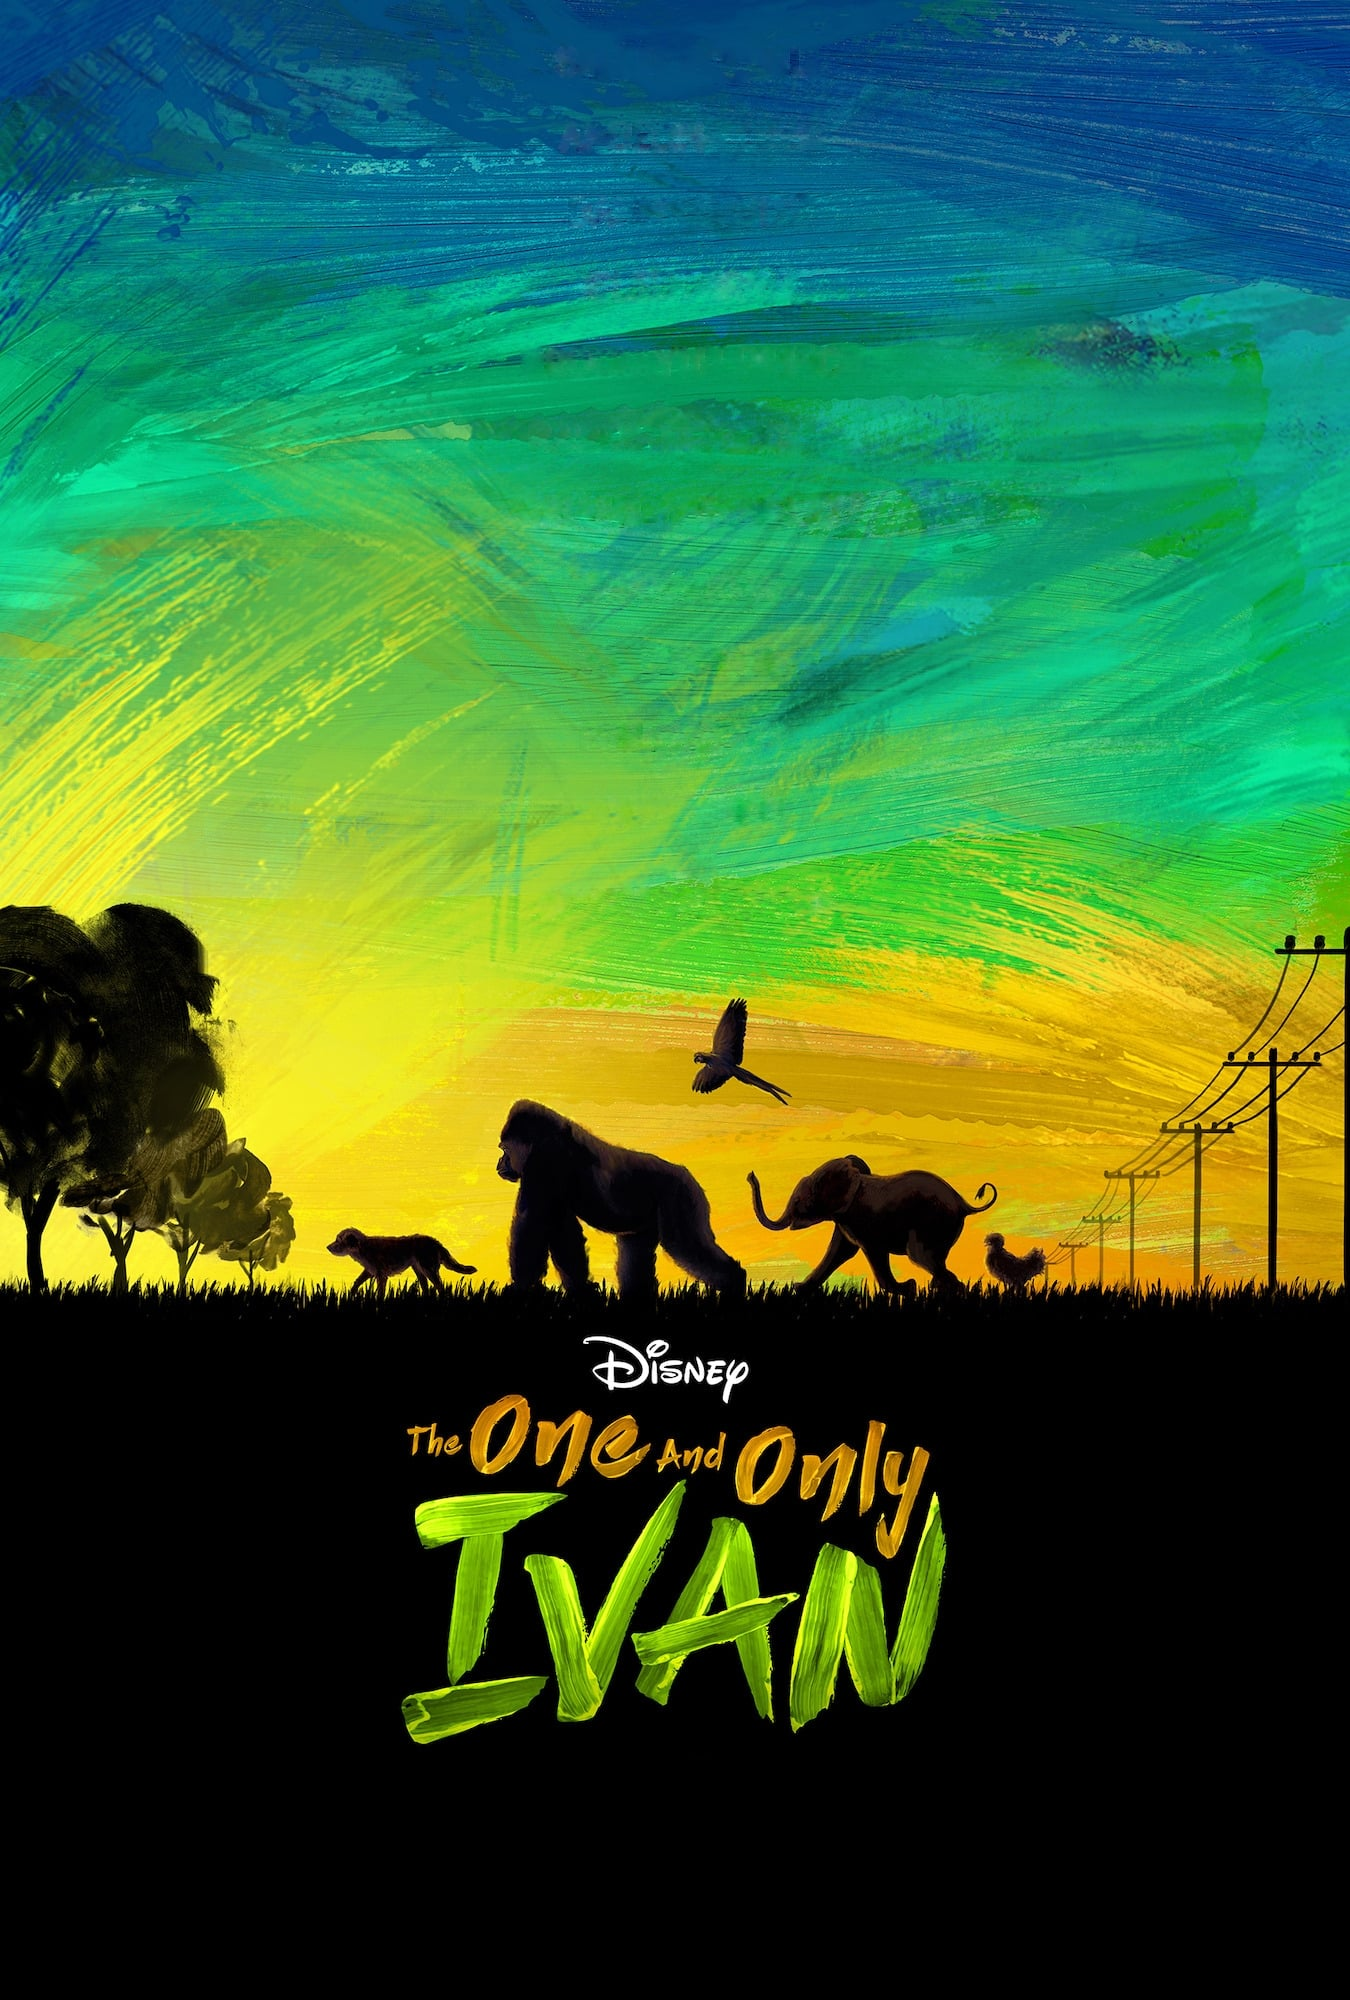 The One and Only Ivan (2020) | 1080p WEB-DL X264 DDP5.1 [3.85 GB] | 720p WEB-DL  [2.94 GB] | WEBRip x264 [900 MB] | G-Drive